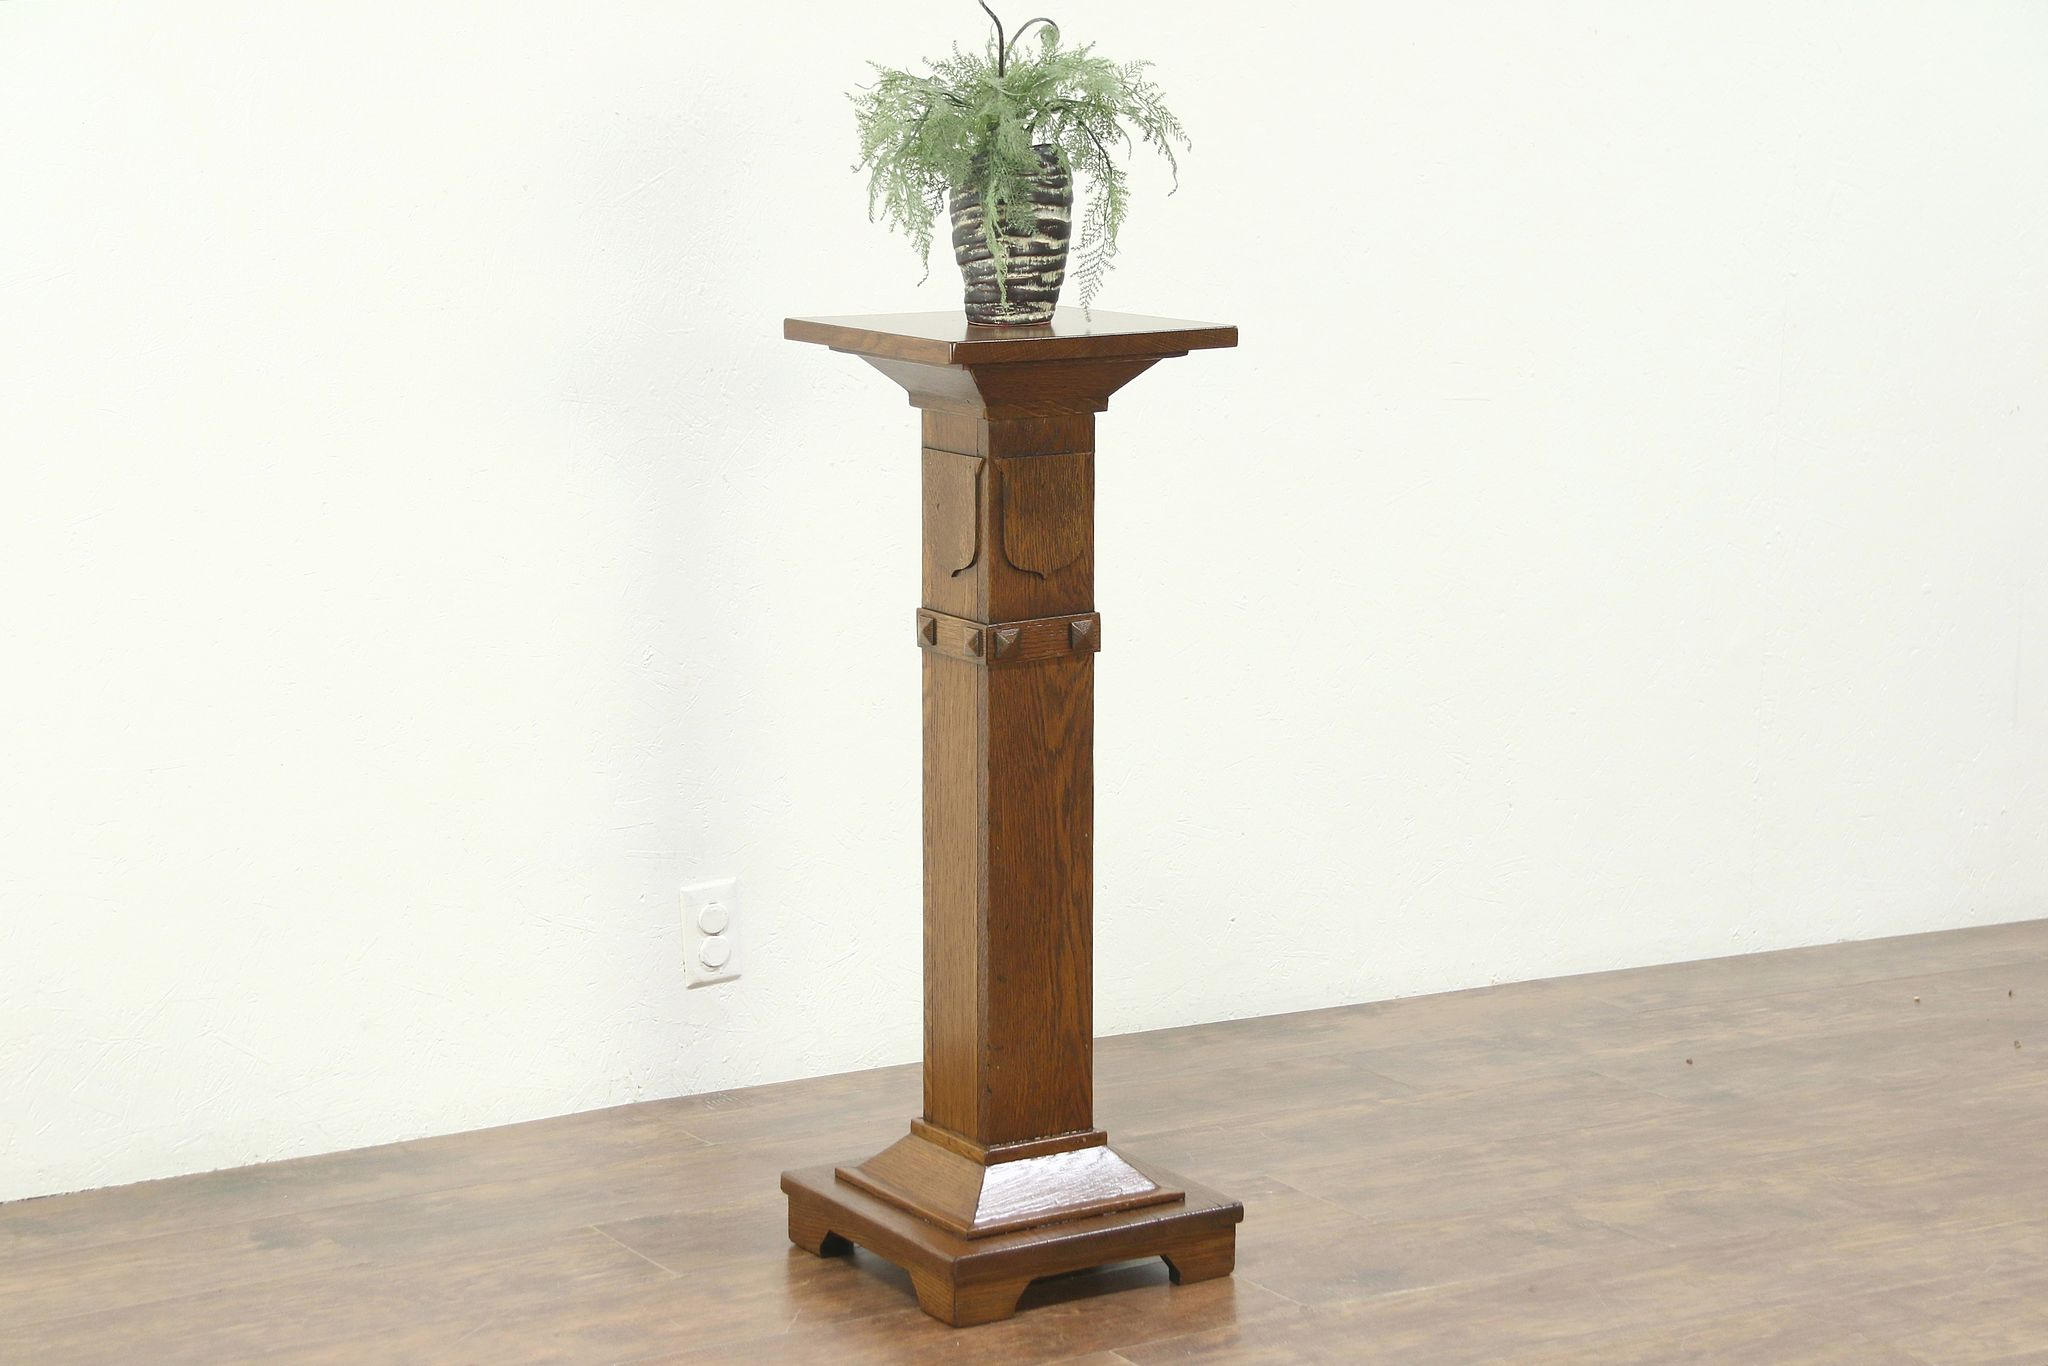 plant for statues outdoor design large dp sculpture amazon inlaid com size pedestal toscano garden stand imperia